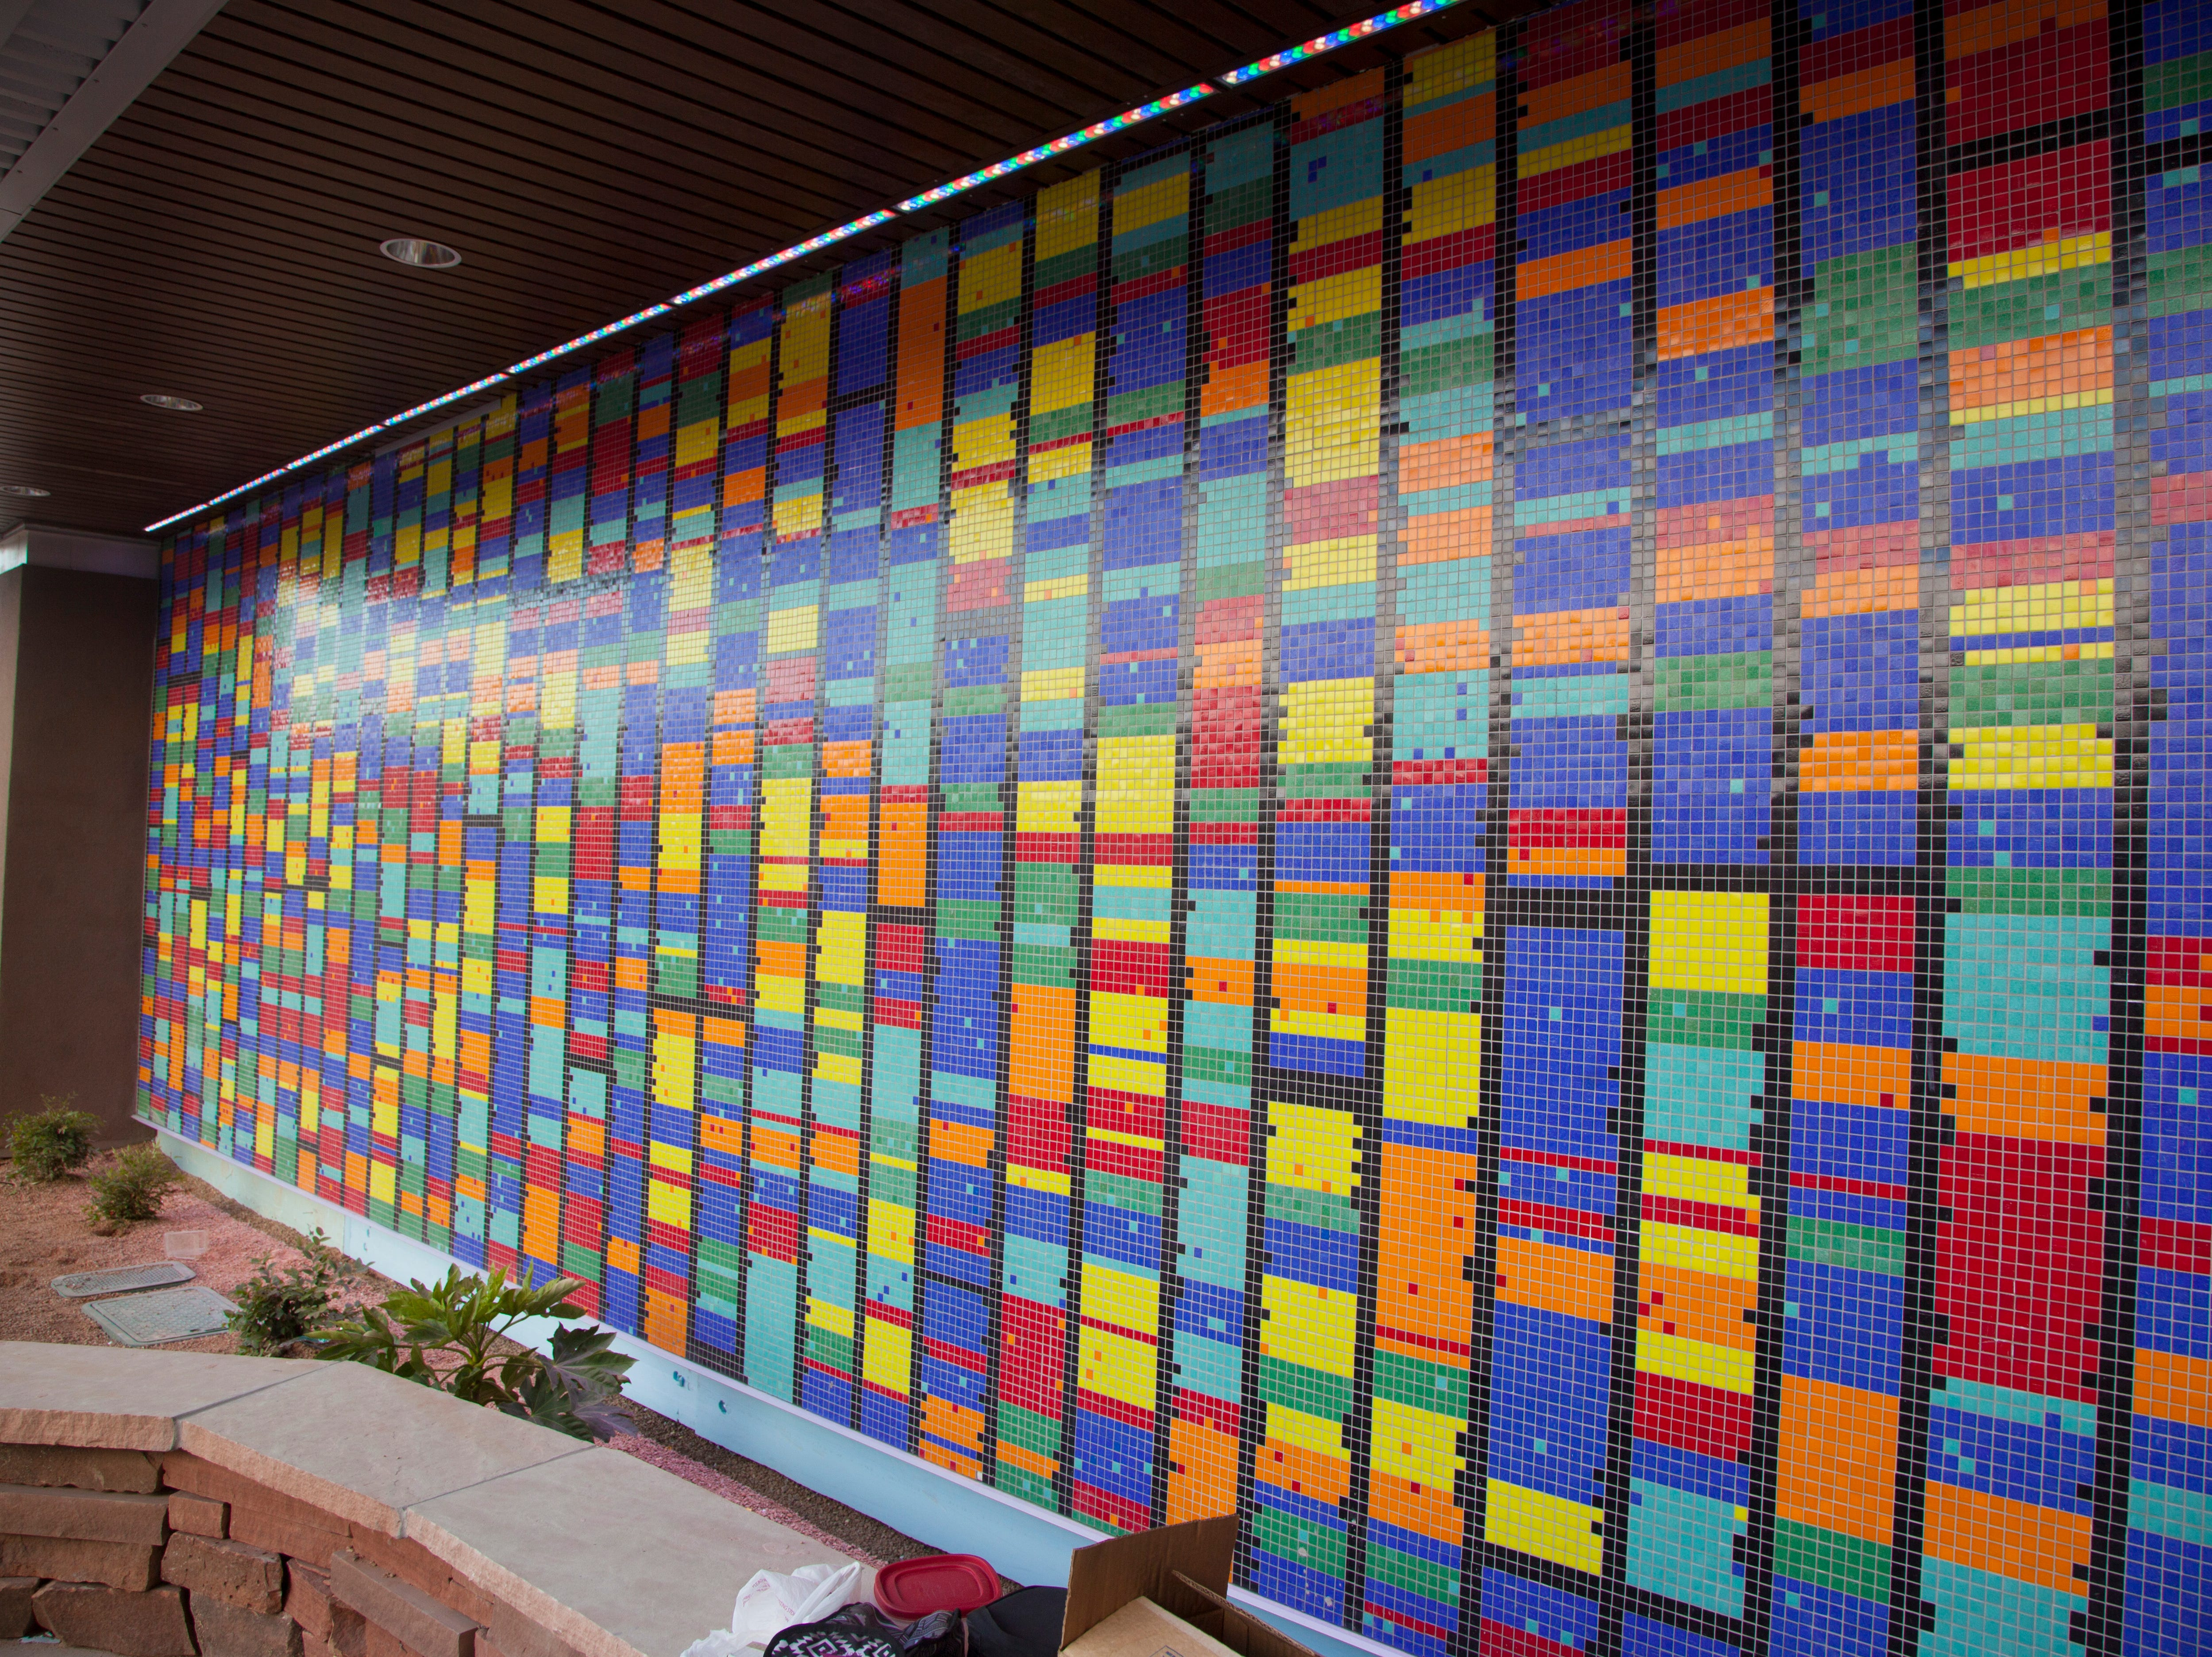 A mosaic on the side of the Intermountain Cancer Center of St. George was designed to resemble DNA sequences.